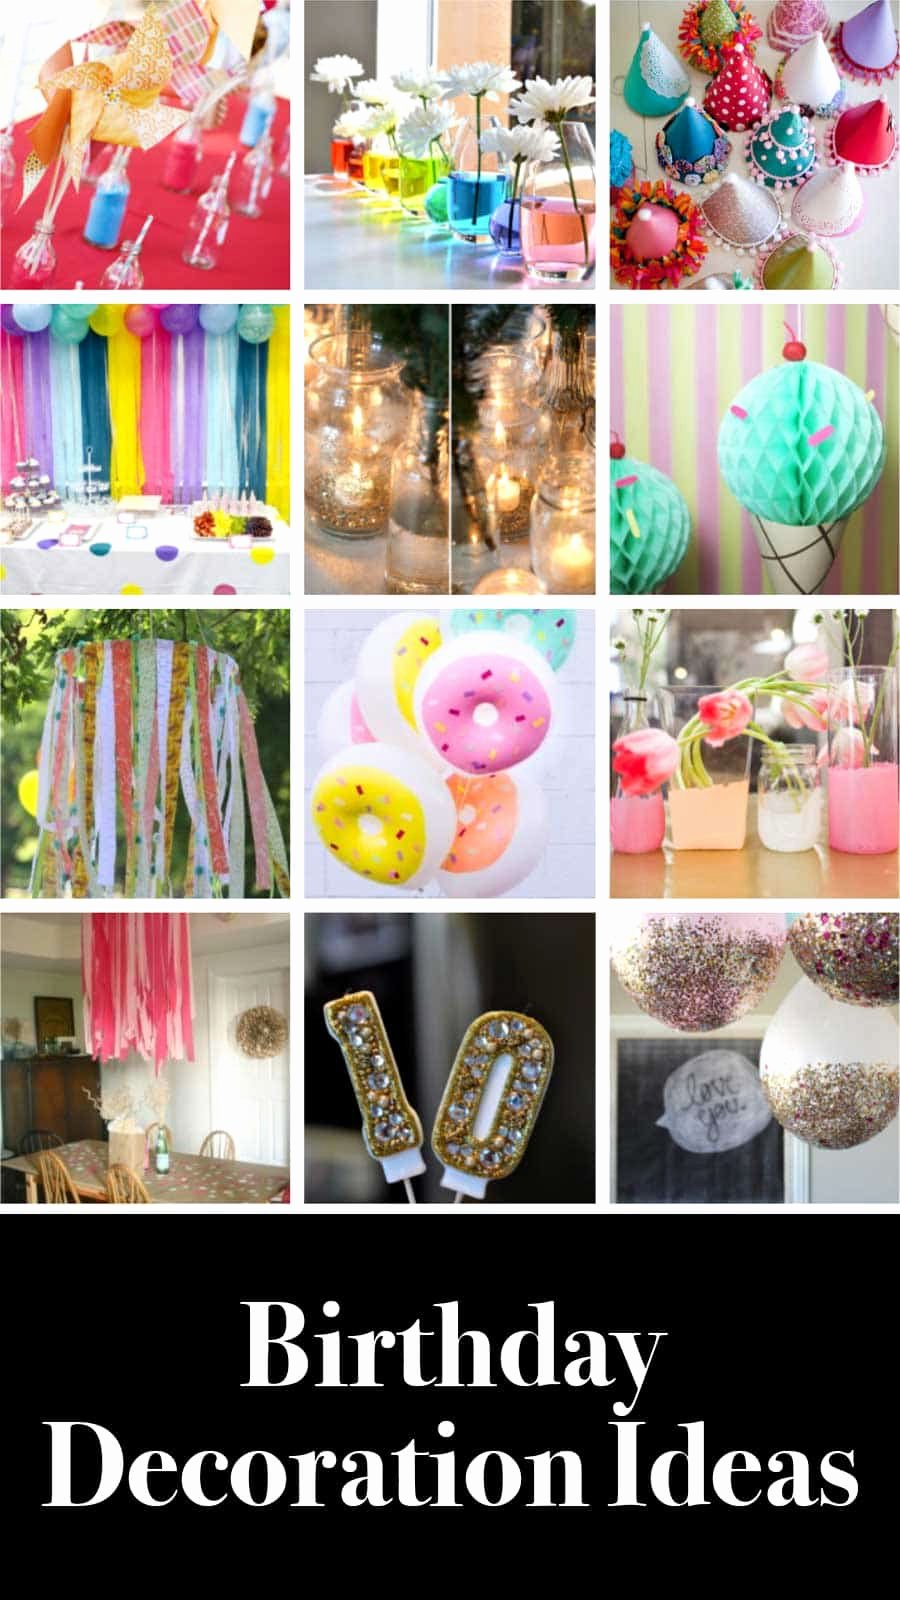 Wife Birthday Decoration Ideas at Home Luxury 12 Easy Diy Birthday Decoration Ideas 2020